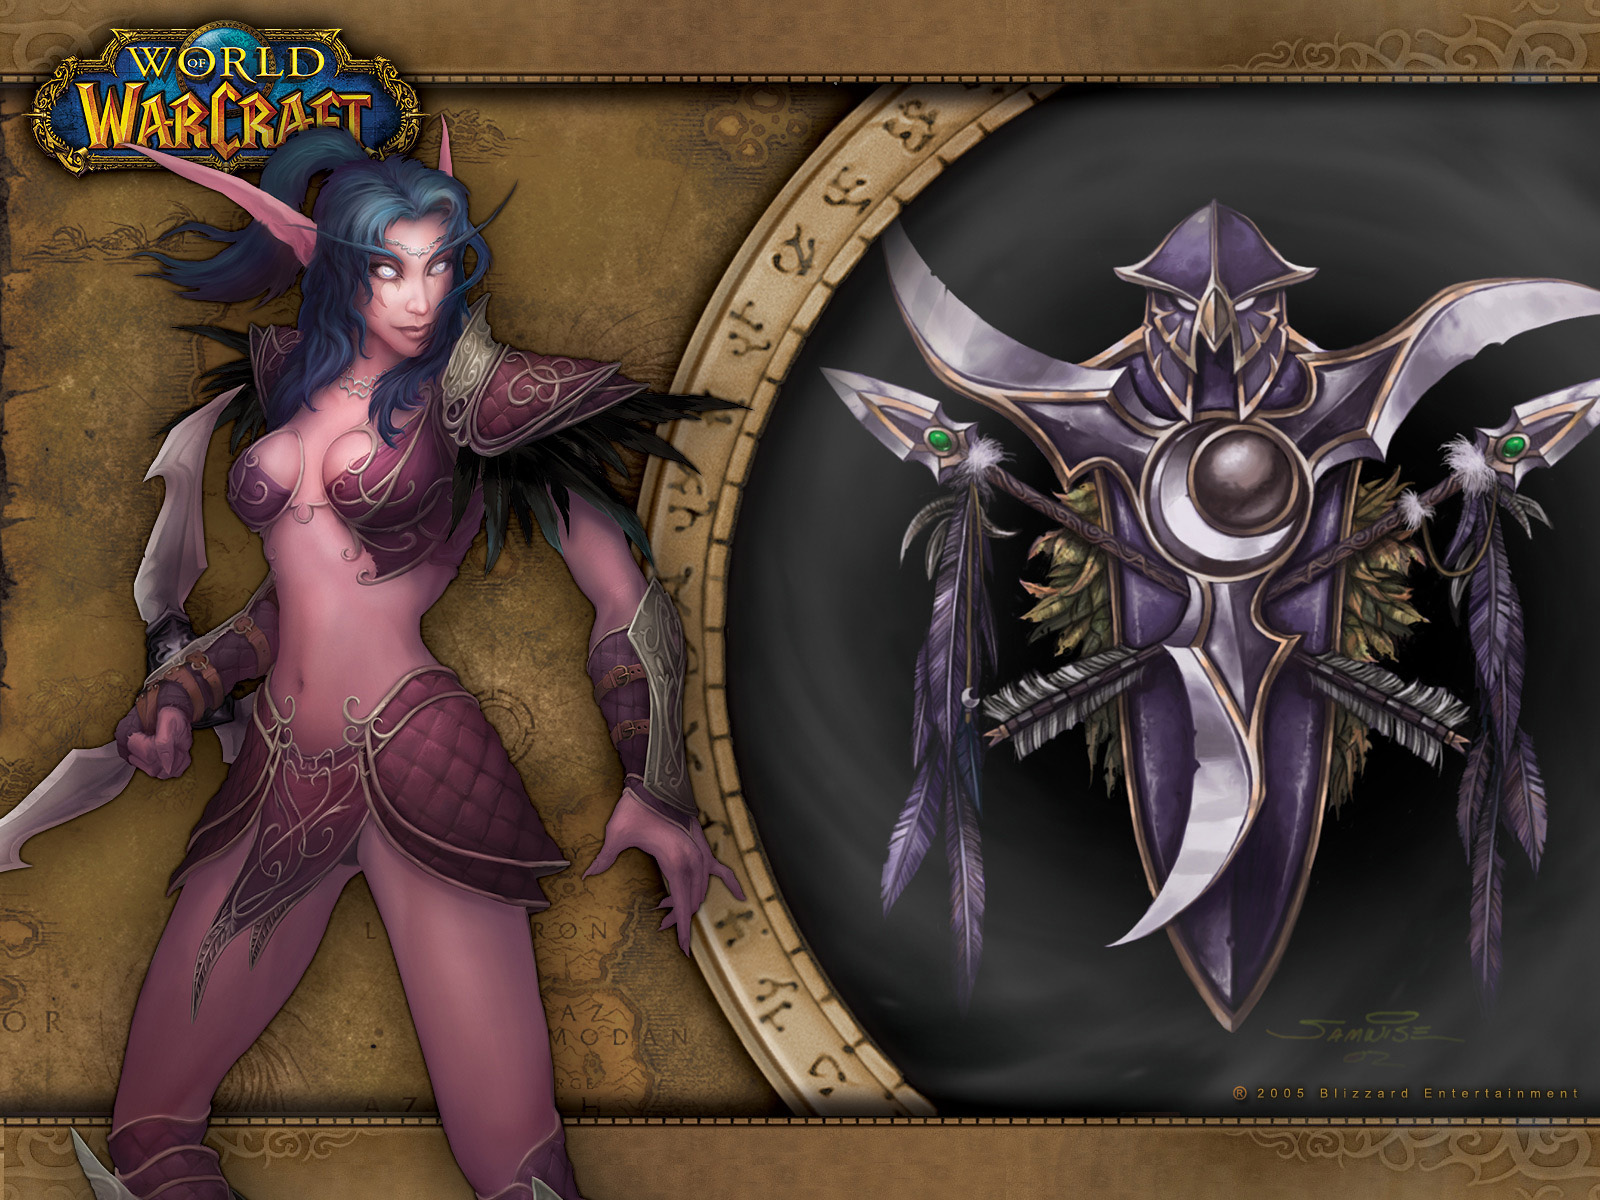 Cartoons of world of warcraft night elf  naked image